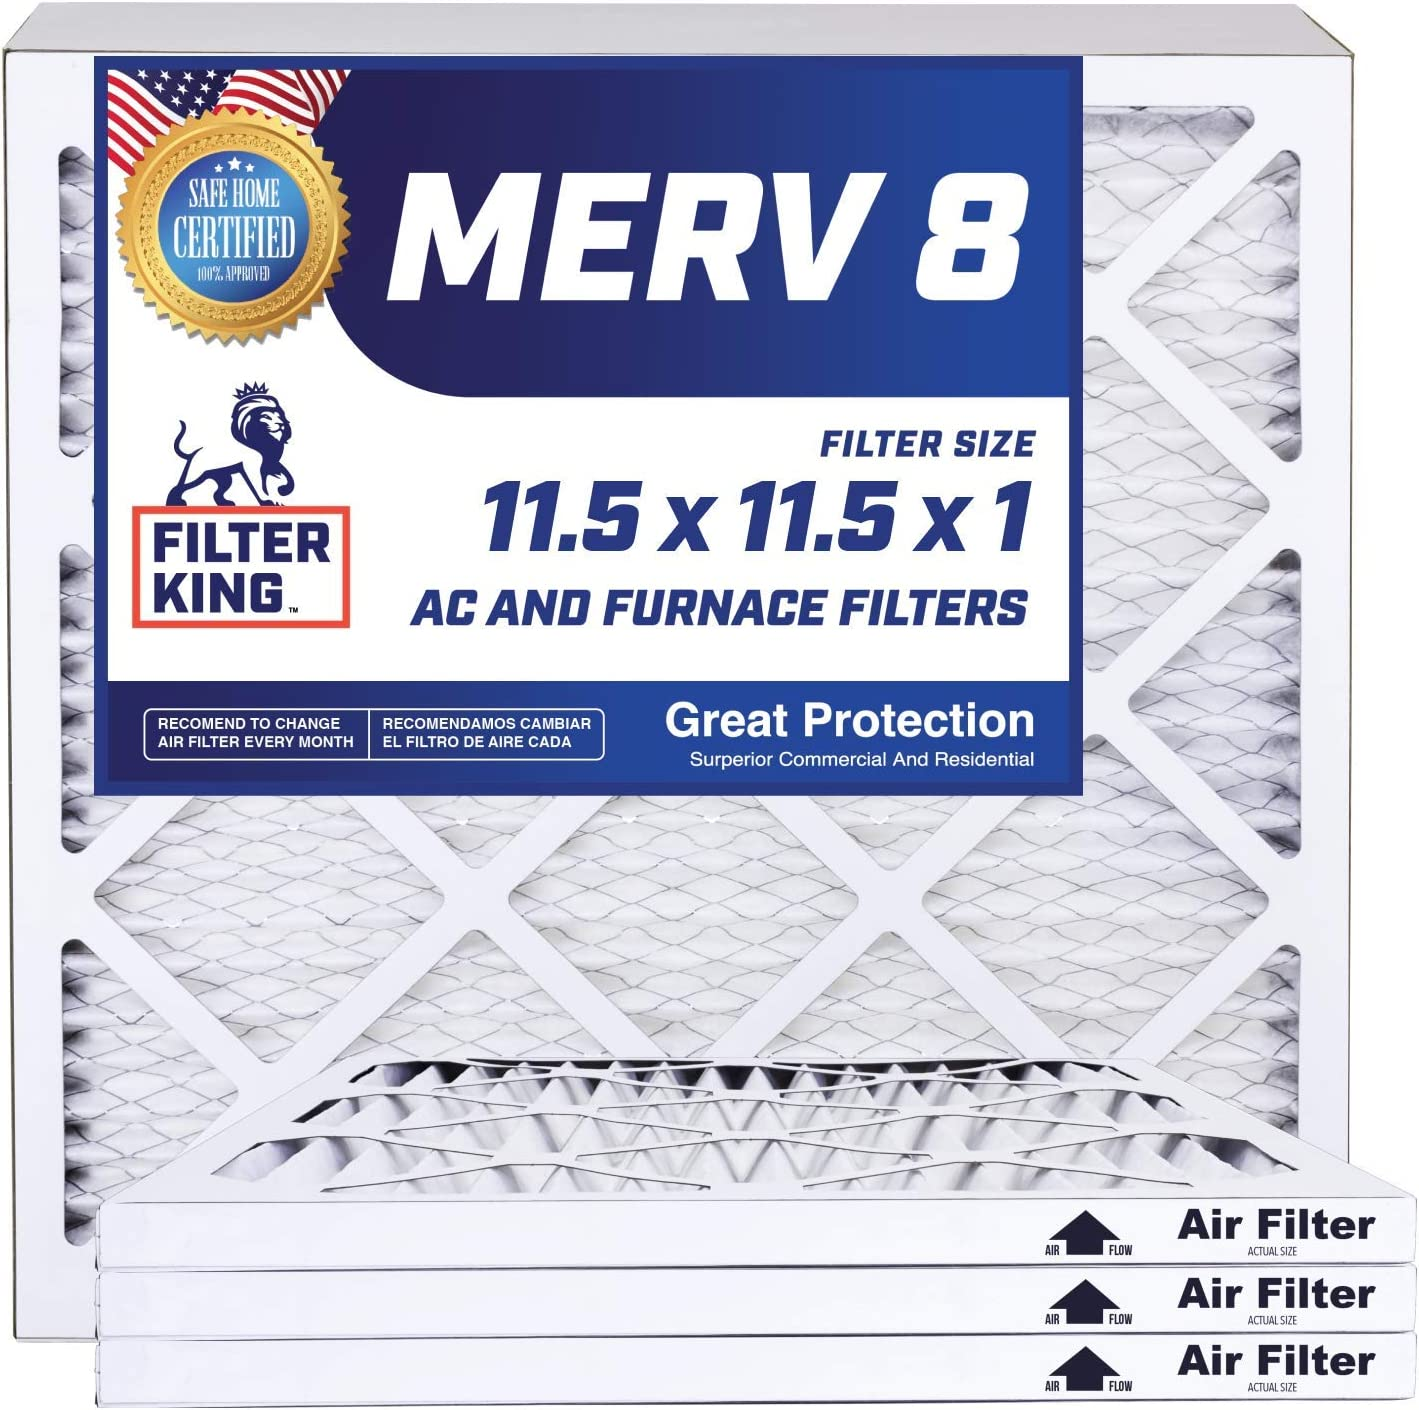 Filter King Directly managed store Max 71% OFF 11.5x11.5x1 Air Filters 4 Pack Pleat HVAC MERV 8